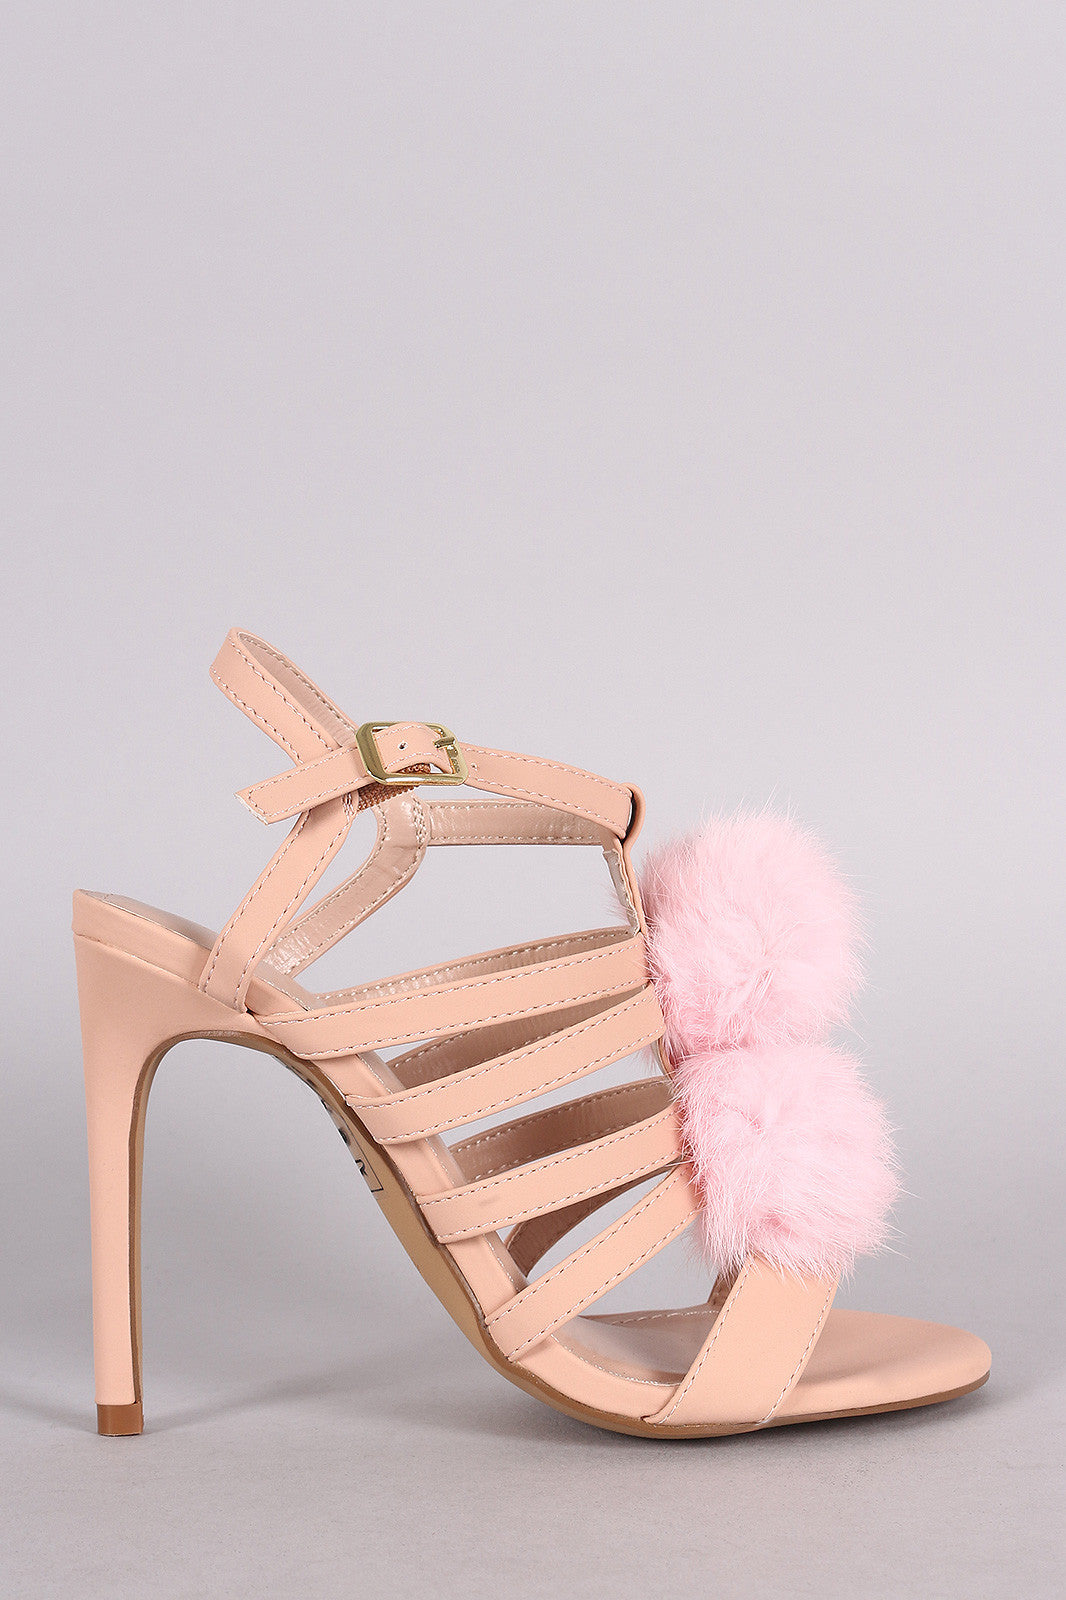 Shoe Republic LA Nubuck Strappy Pom Pom Stiletto Heel - Thick 'N' Curvy Shop - 1